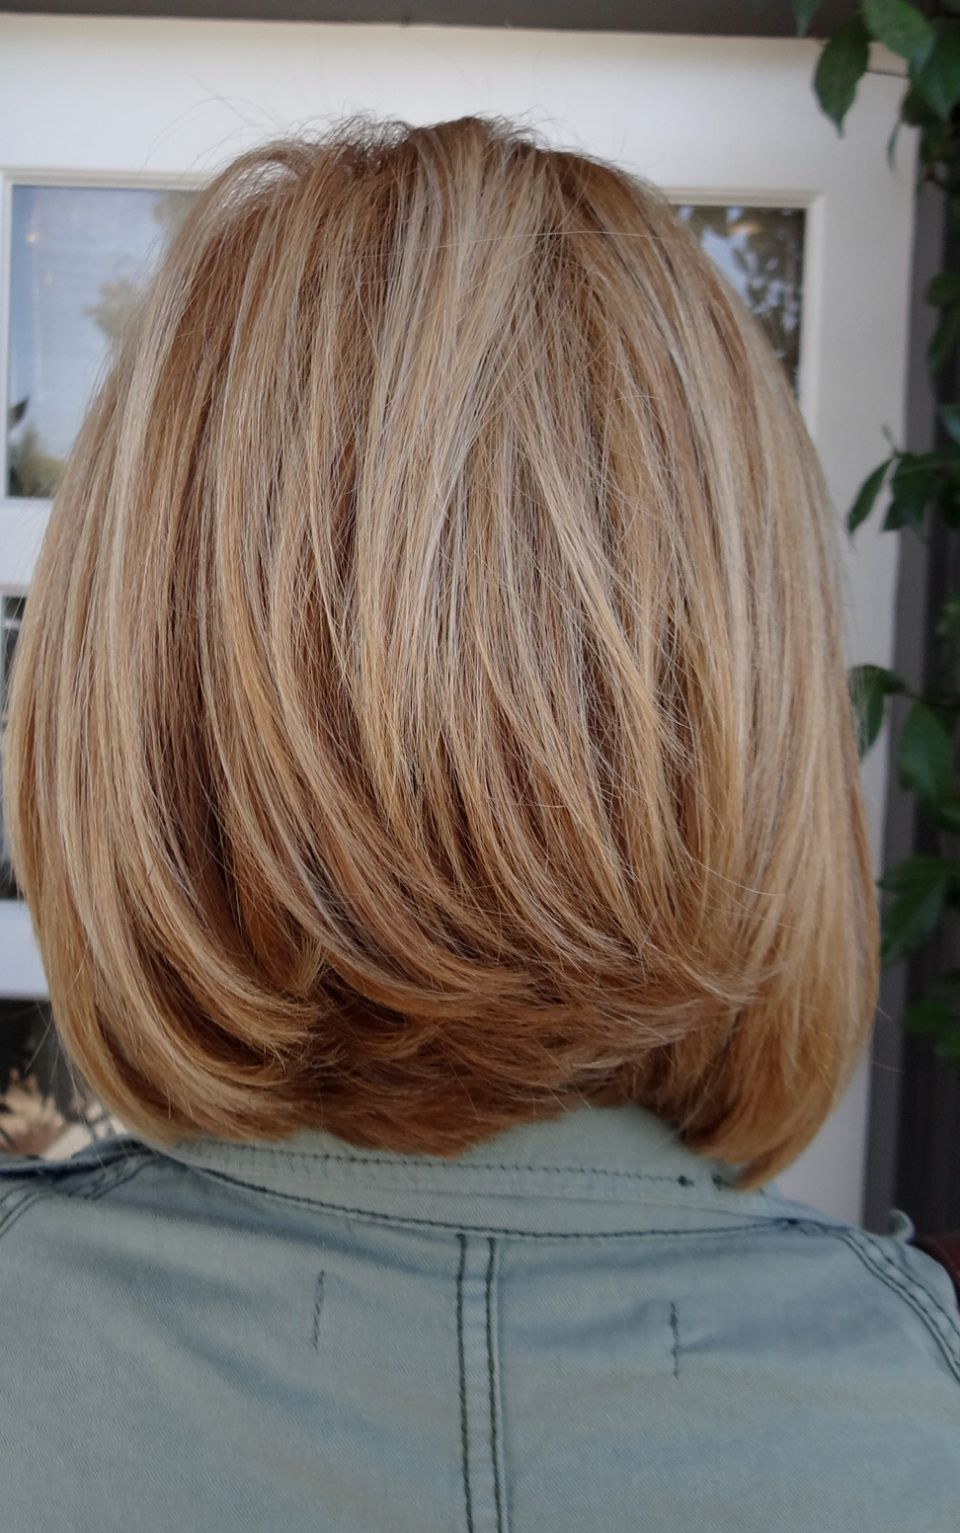 Back cut hair stuff pinterest brassy hair hair style and hair